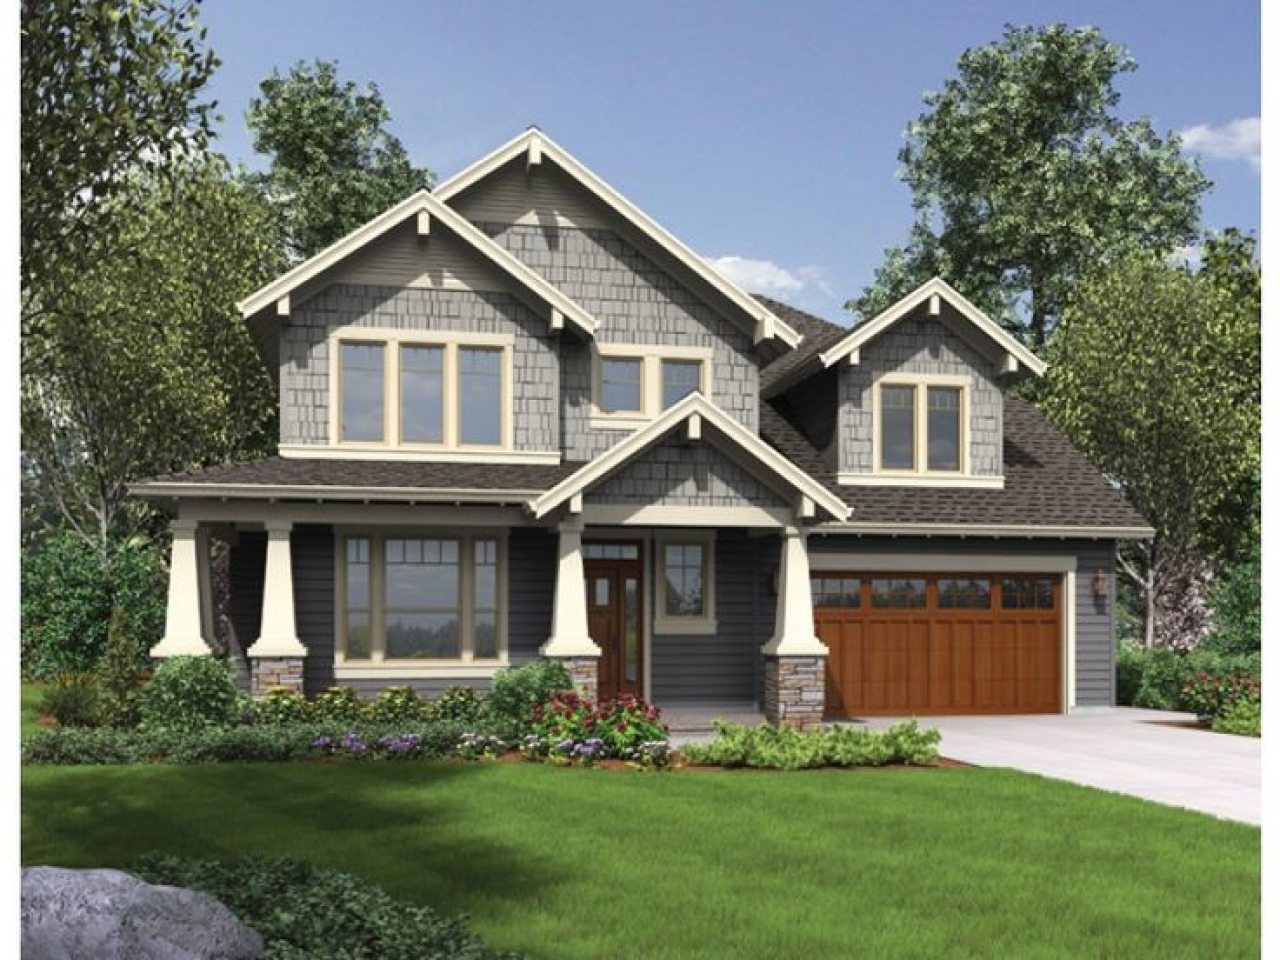 3 bedroom house designs 3 bedroom craftsman house plans for Craftsman style bed plans